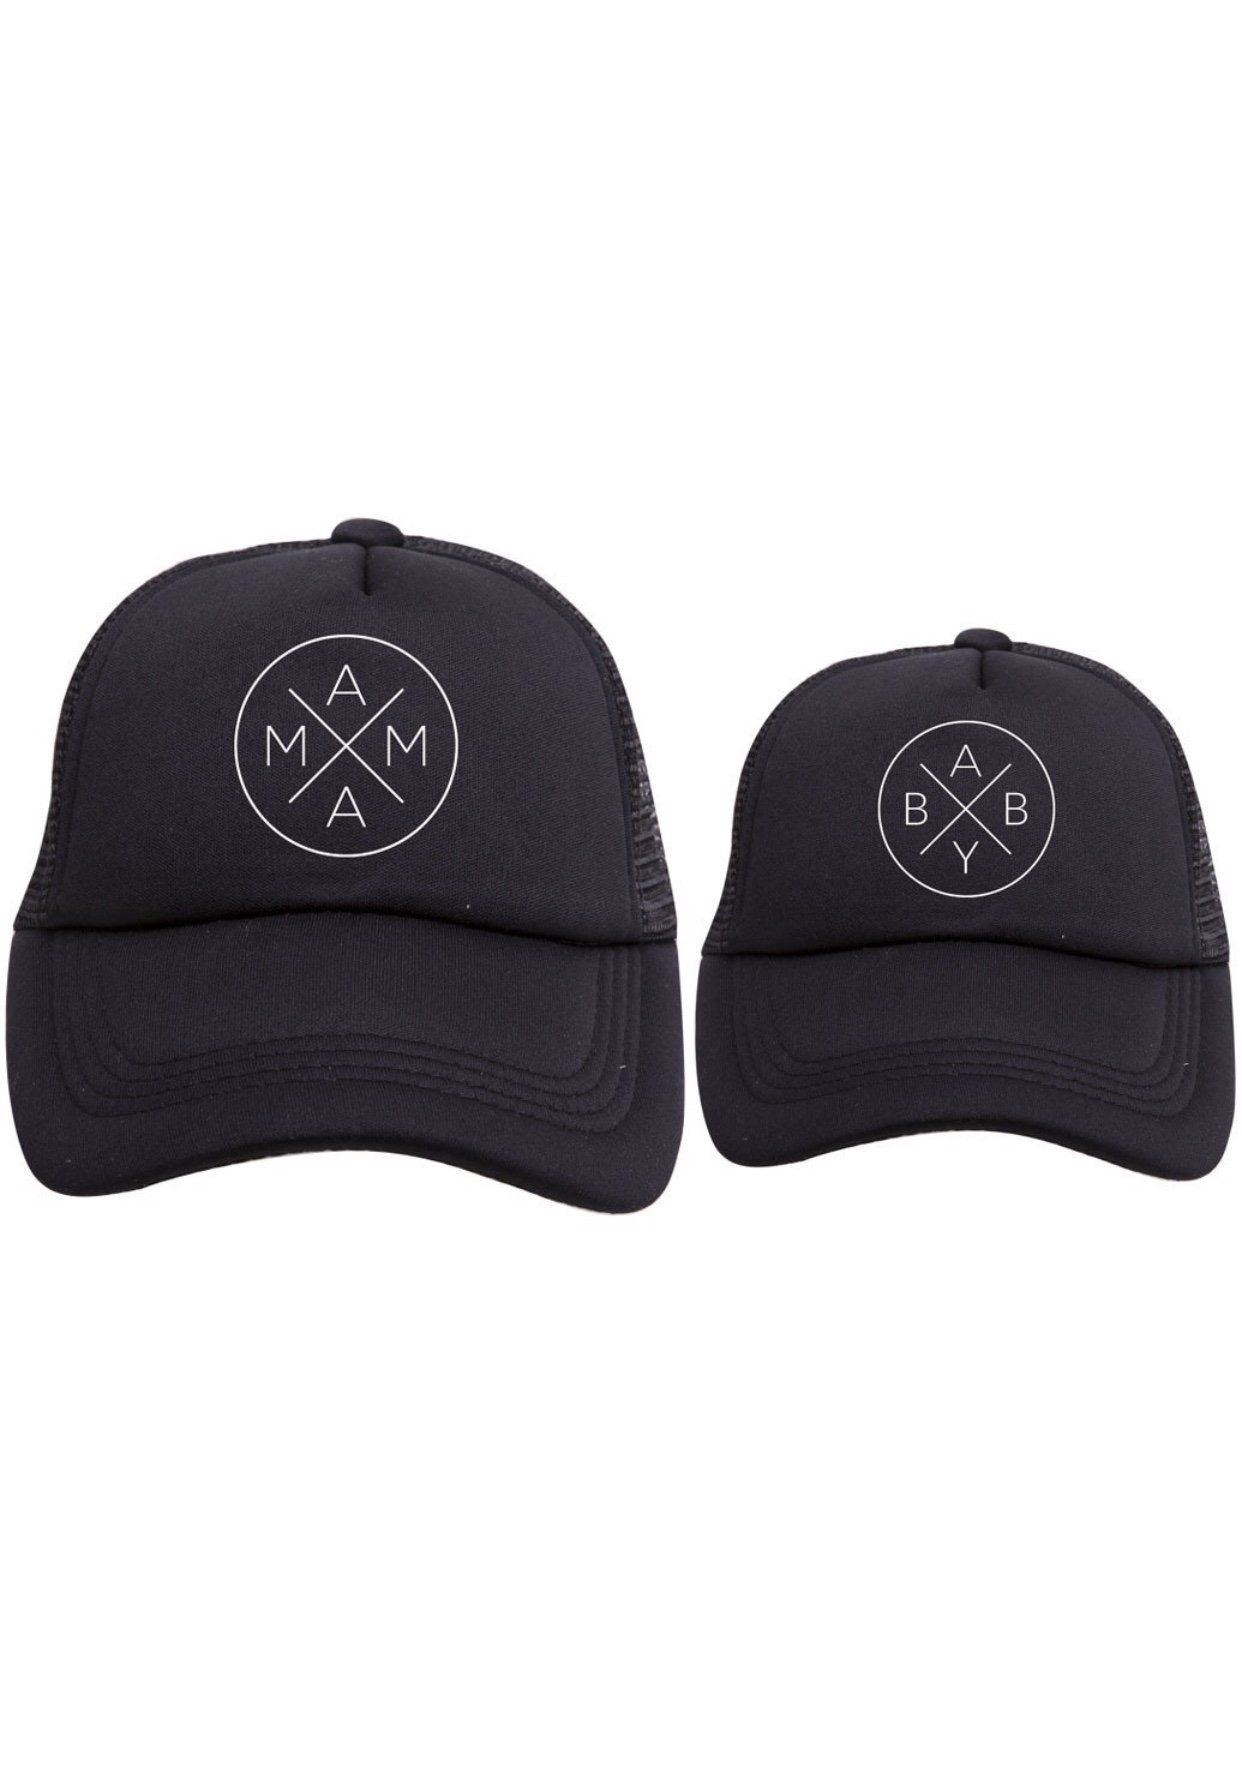 PREORDER - Mama and Baby X Hat Set  81b96fb42dae